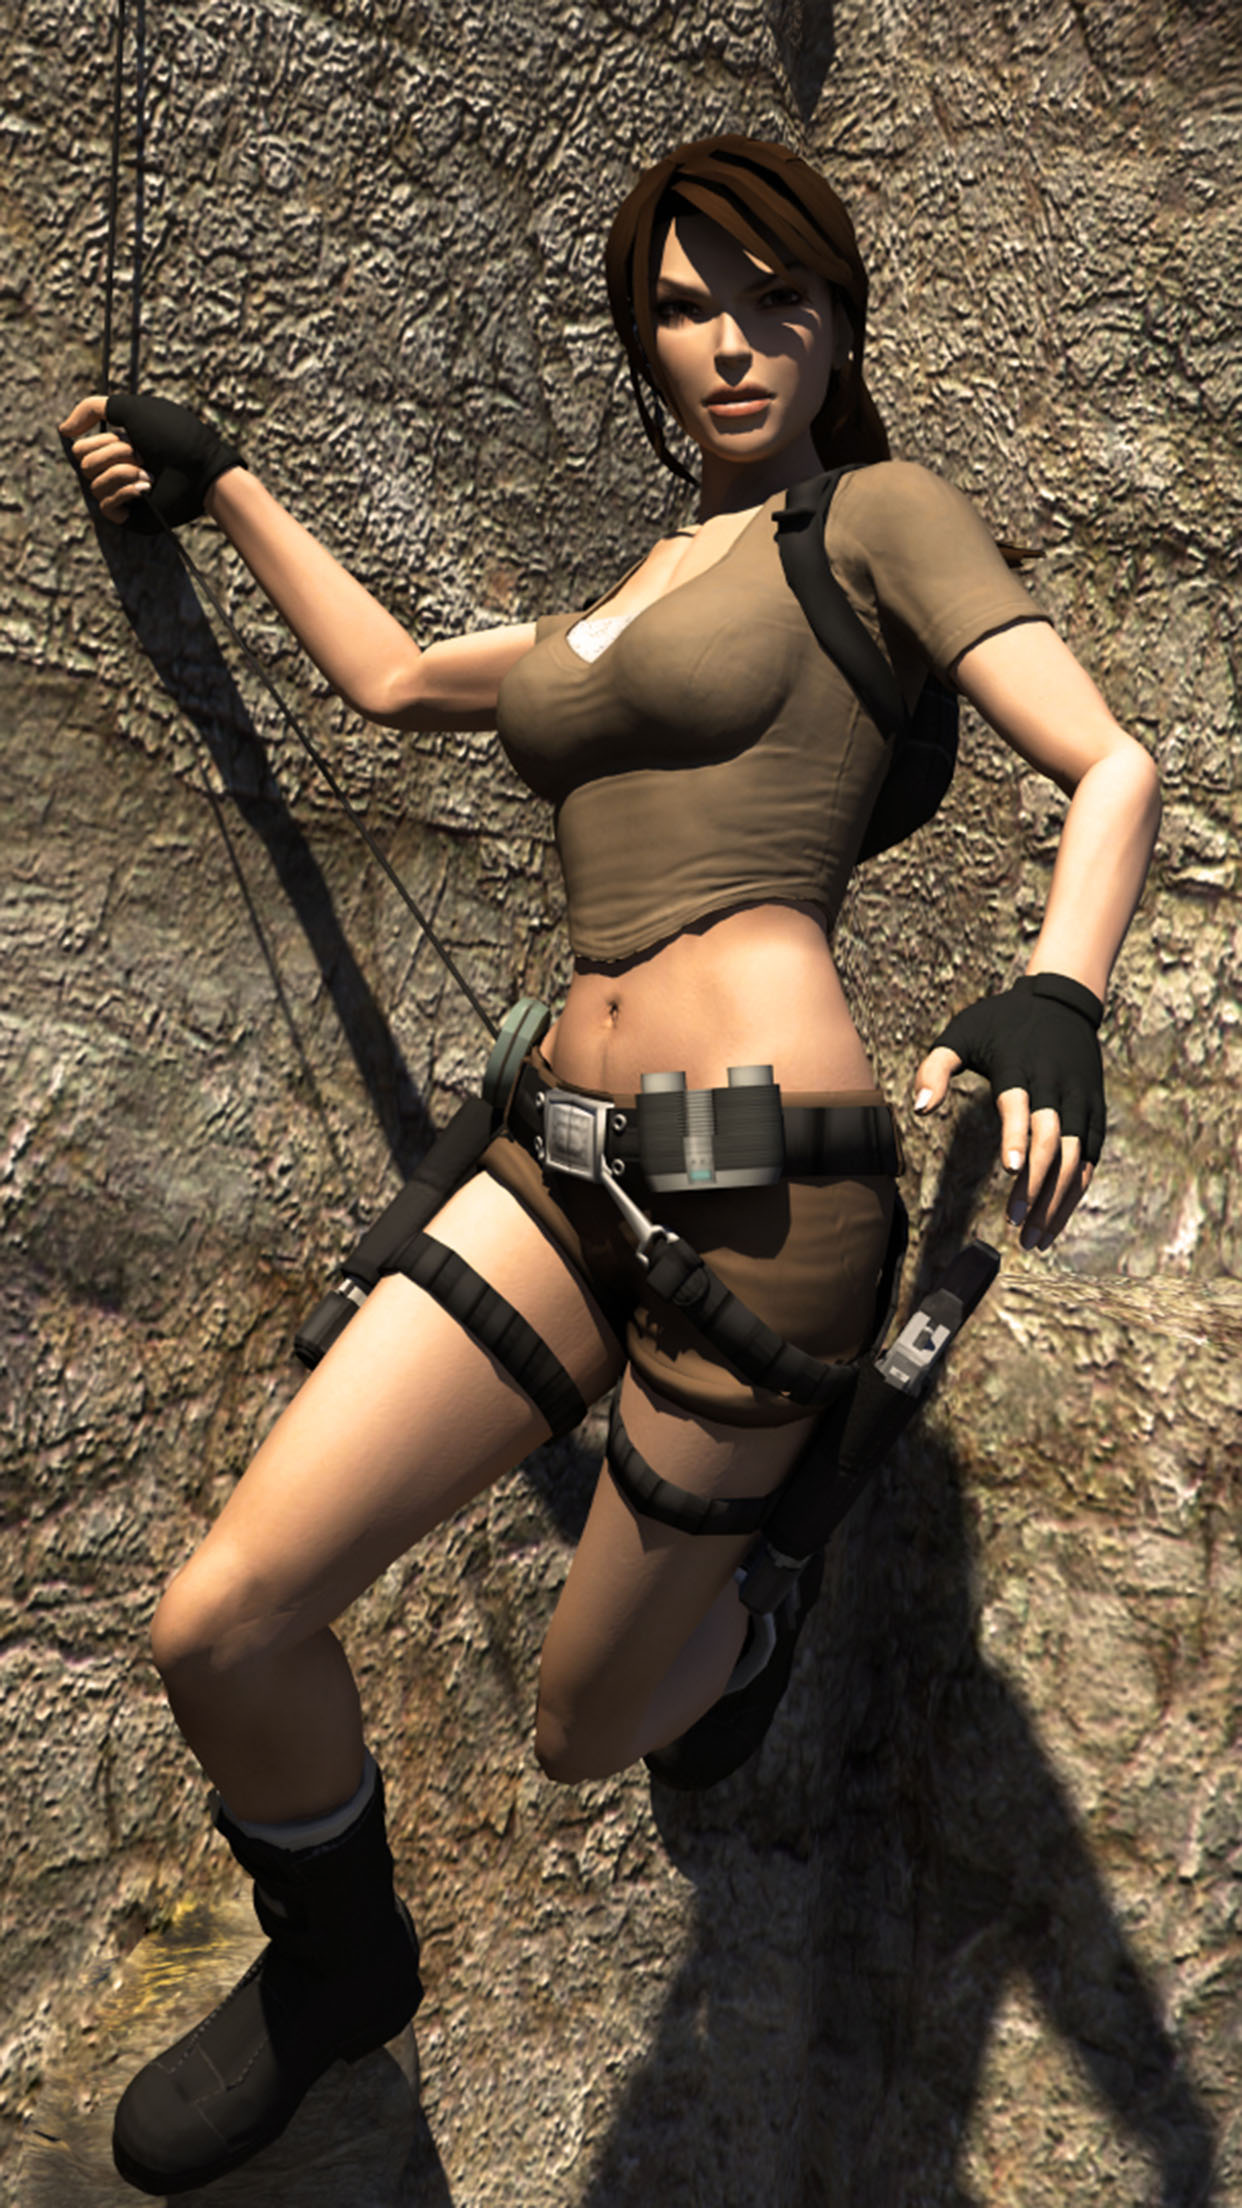 Tomb Raider Lara Croft 3Wallpapers iPhone Parallax Lara Croft